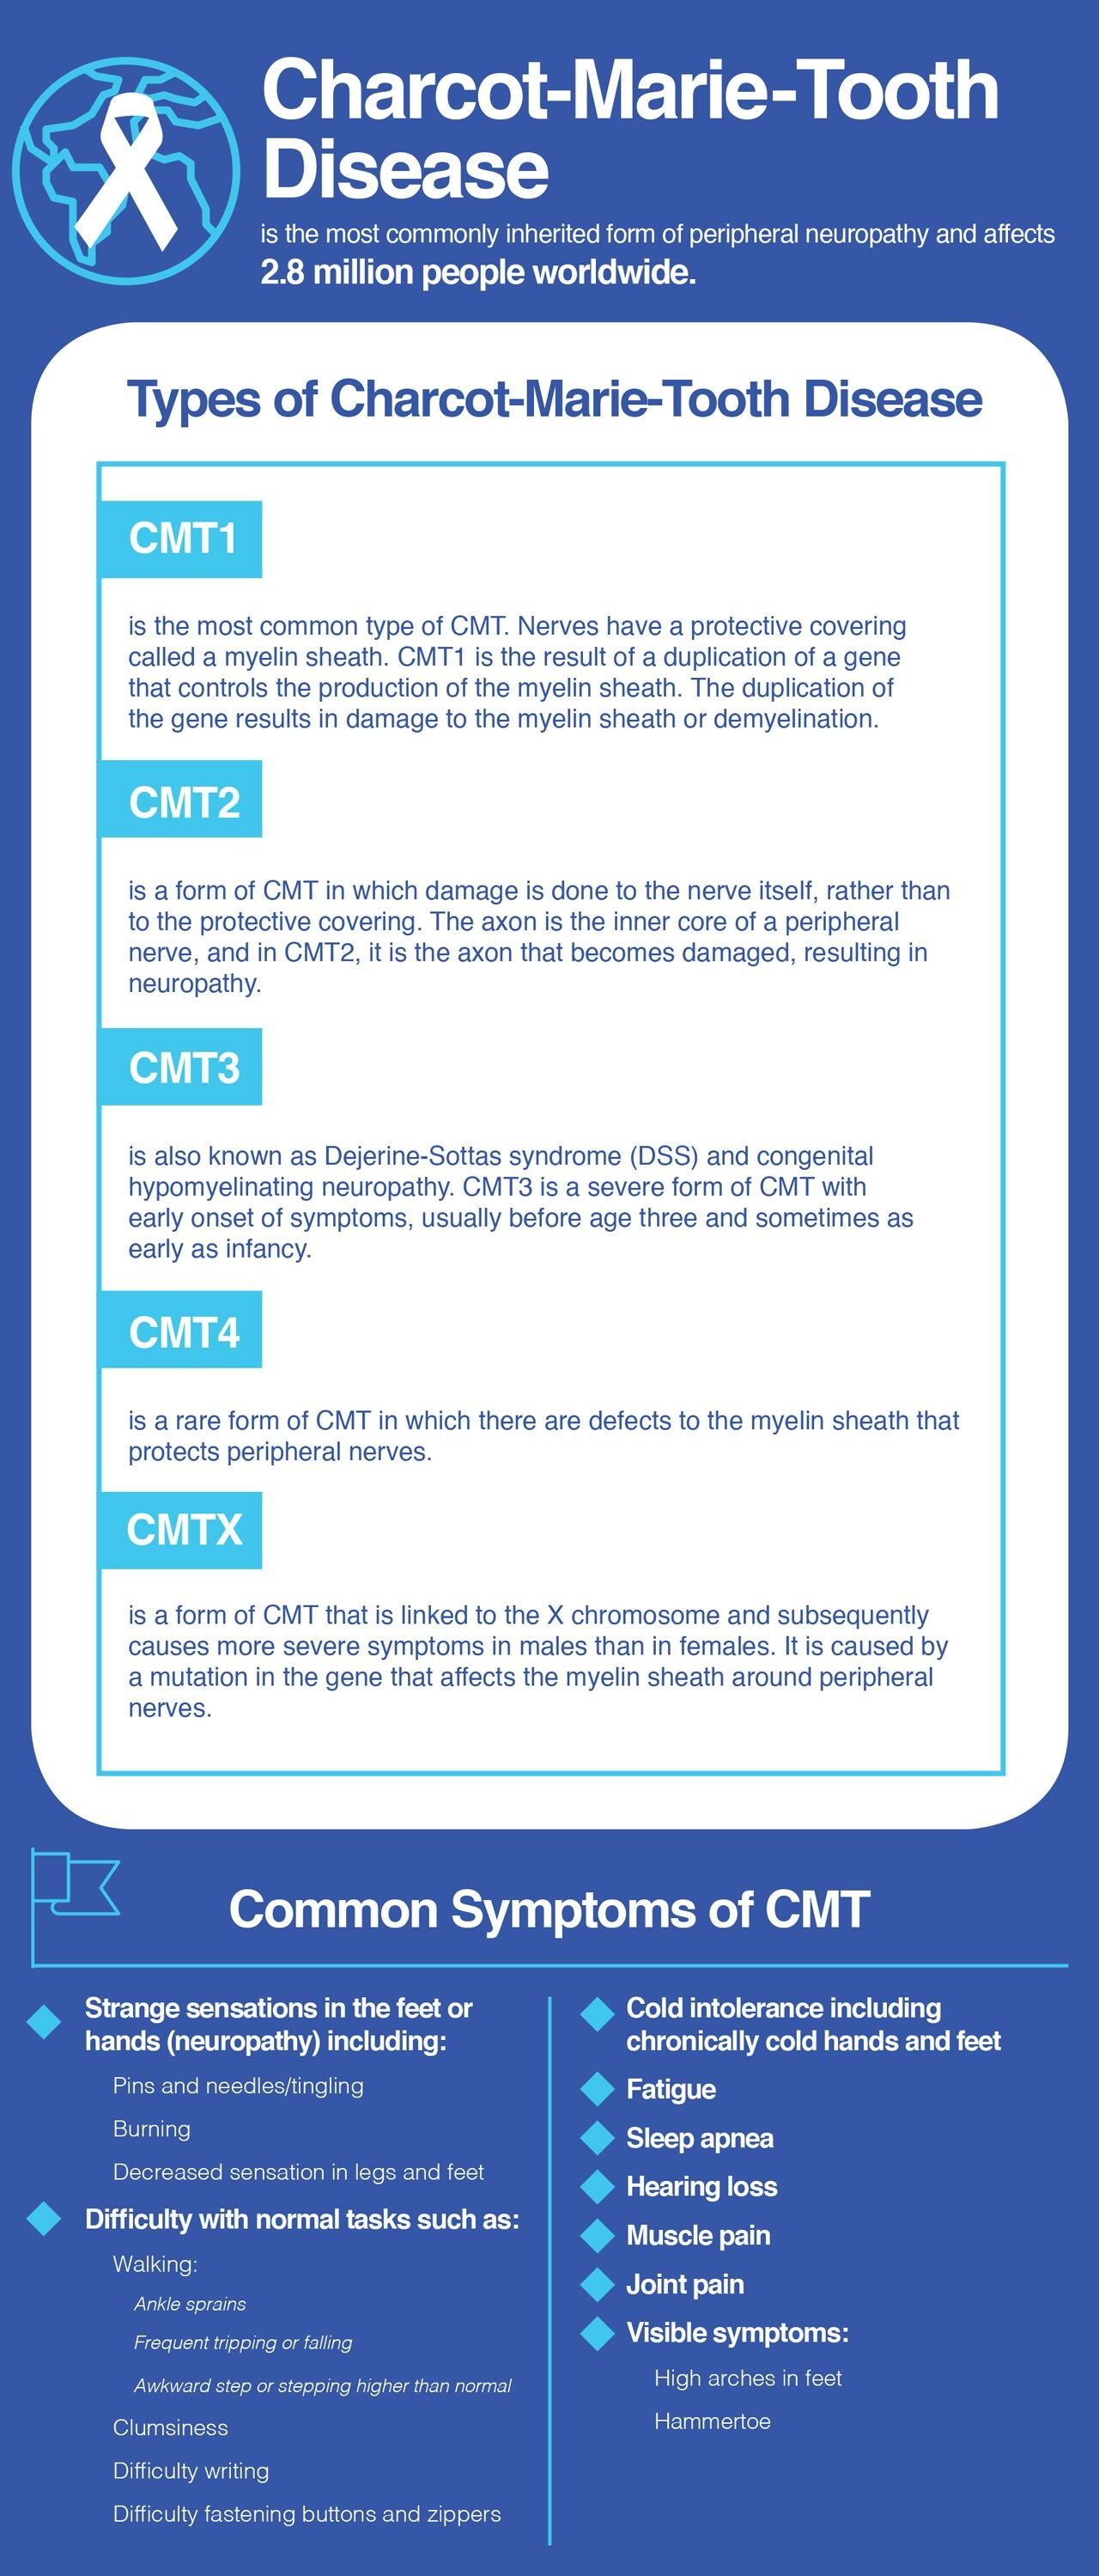 Charcot-Marie-Tooth disease types and symptoms